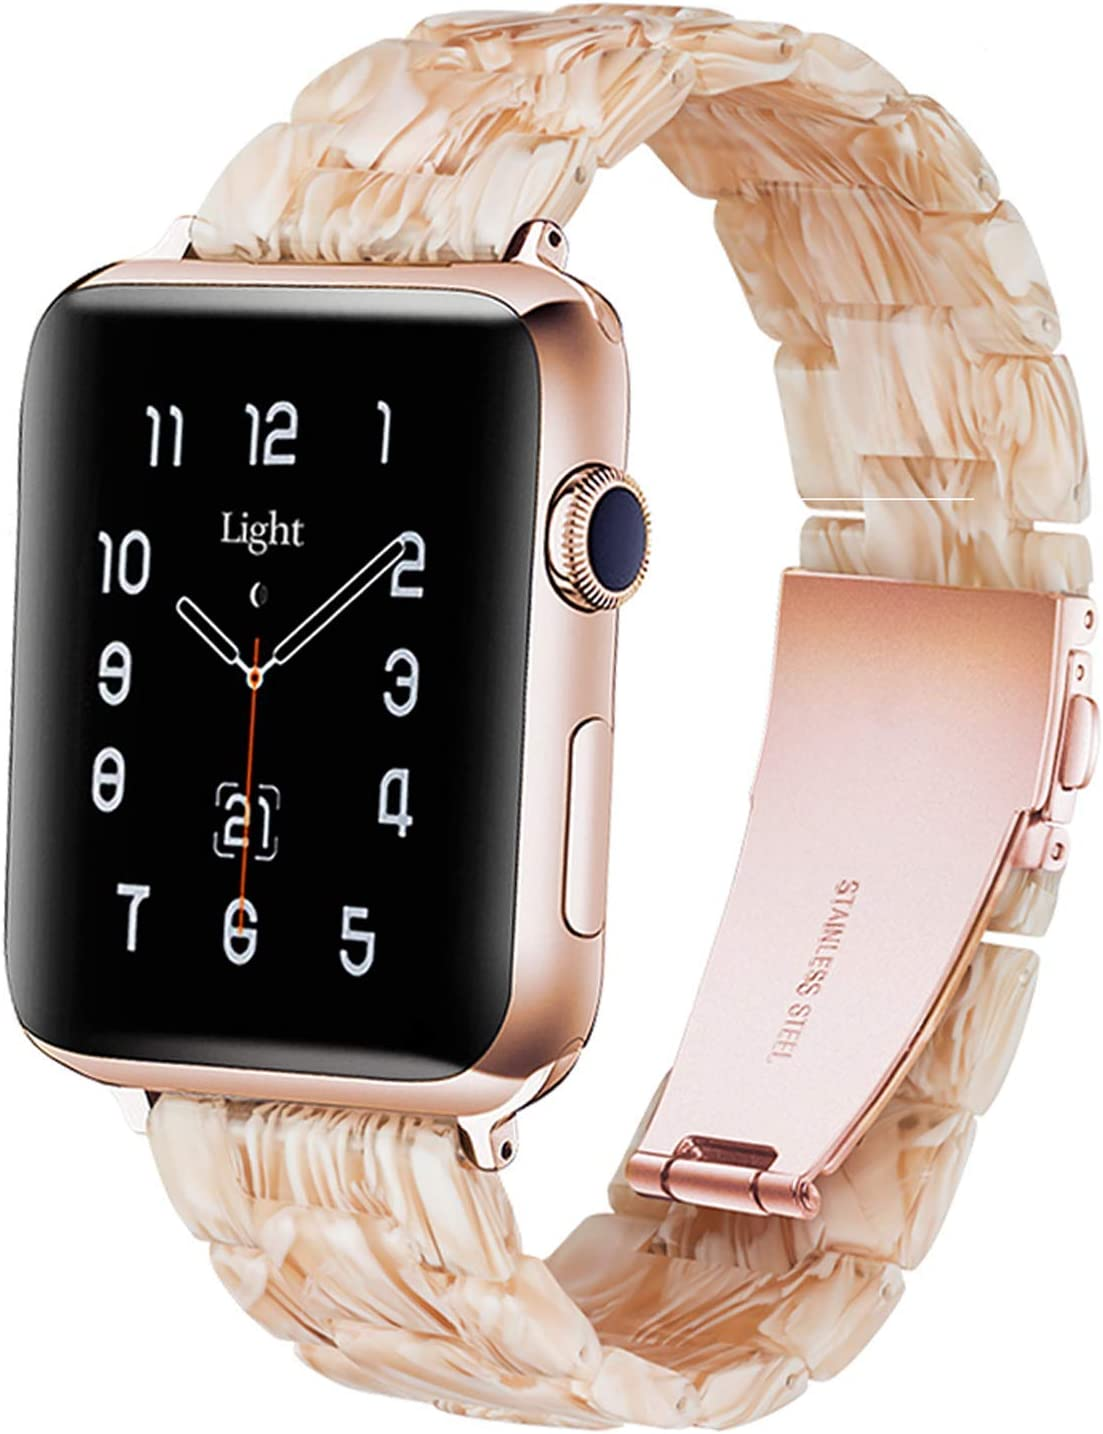 Light Apple Watch Band - Fashion Resin iWatch Band Bracelet Compatible with Copper Stainless Steel Buckle for Apple Watch Series SE Series 6 Series 5 Series 4 Series 3 Series 2 Series1 (Silky white in oak, 38mm/40mm)